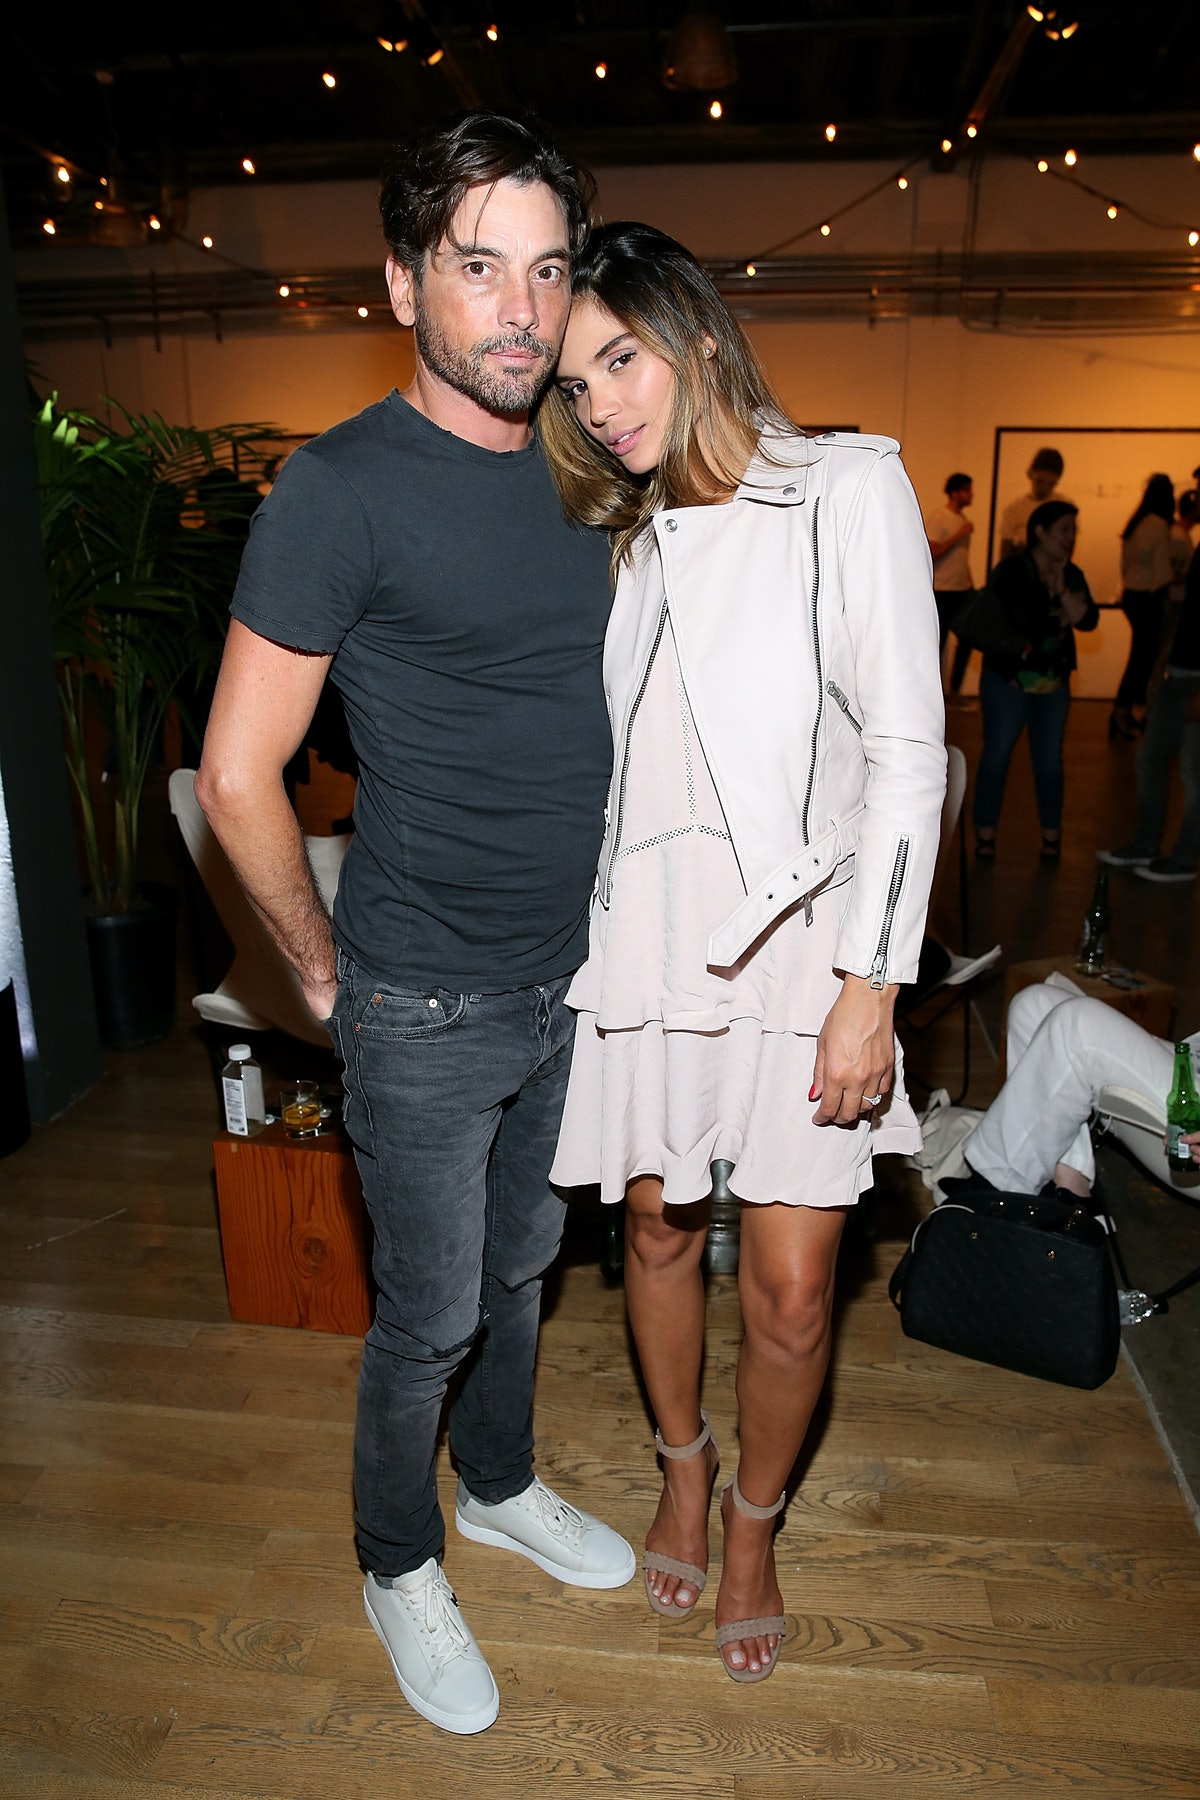 HOLLYWOOD, CA - JUNE 28:  Actor Skeet Ulrich and Rose Costa attend AllSaints Ed Templeton Launch at LA Studios on June 28, 2017 in Hollywood, California.  (Photo by Phillip Faraone/Getty Images)